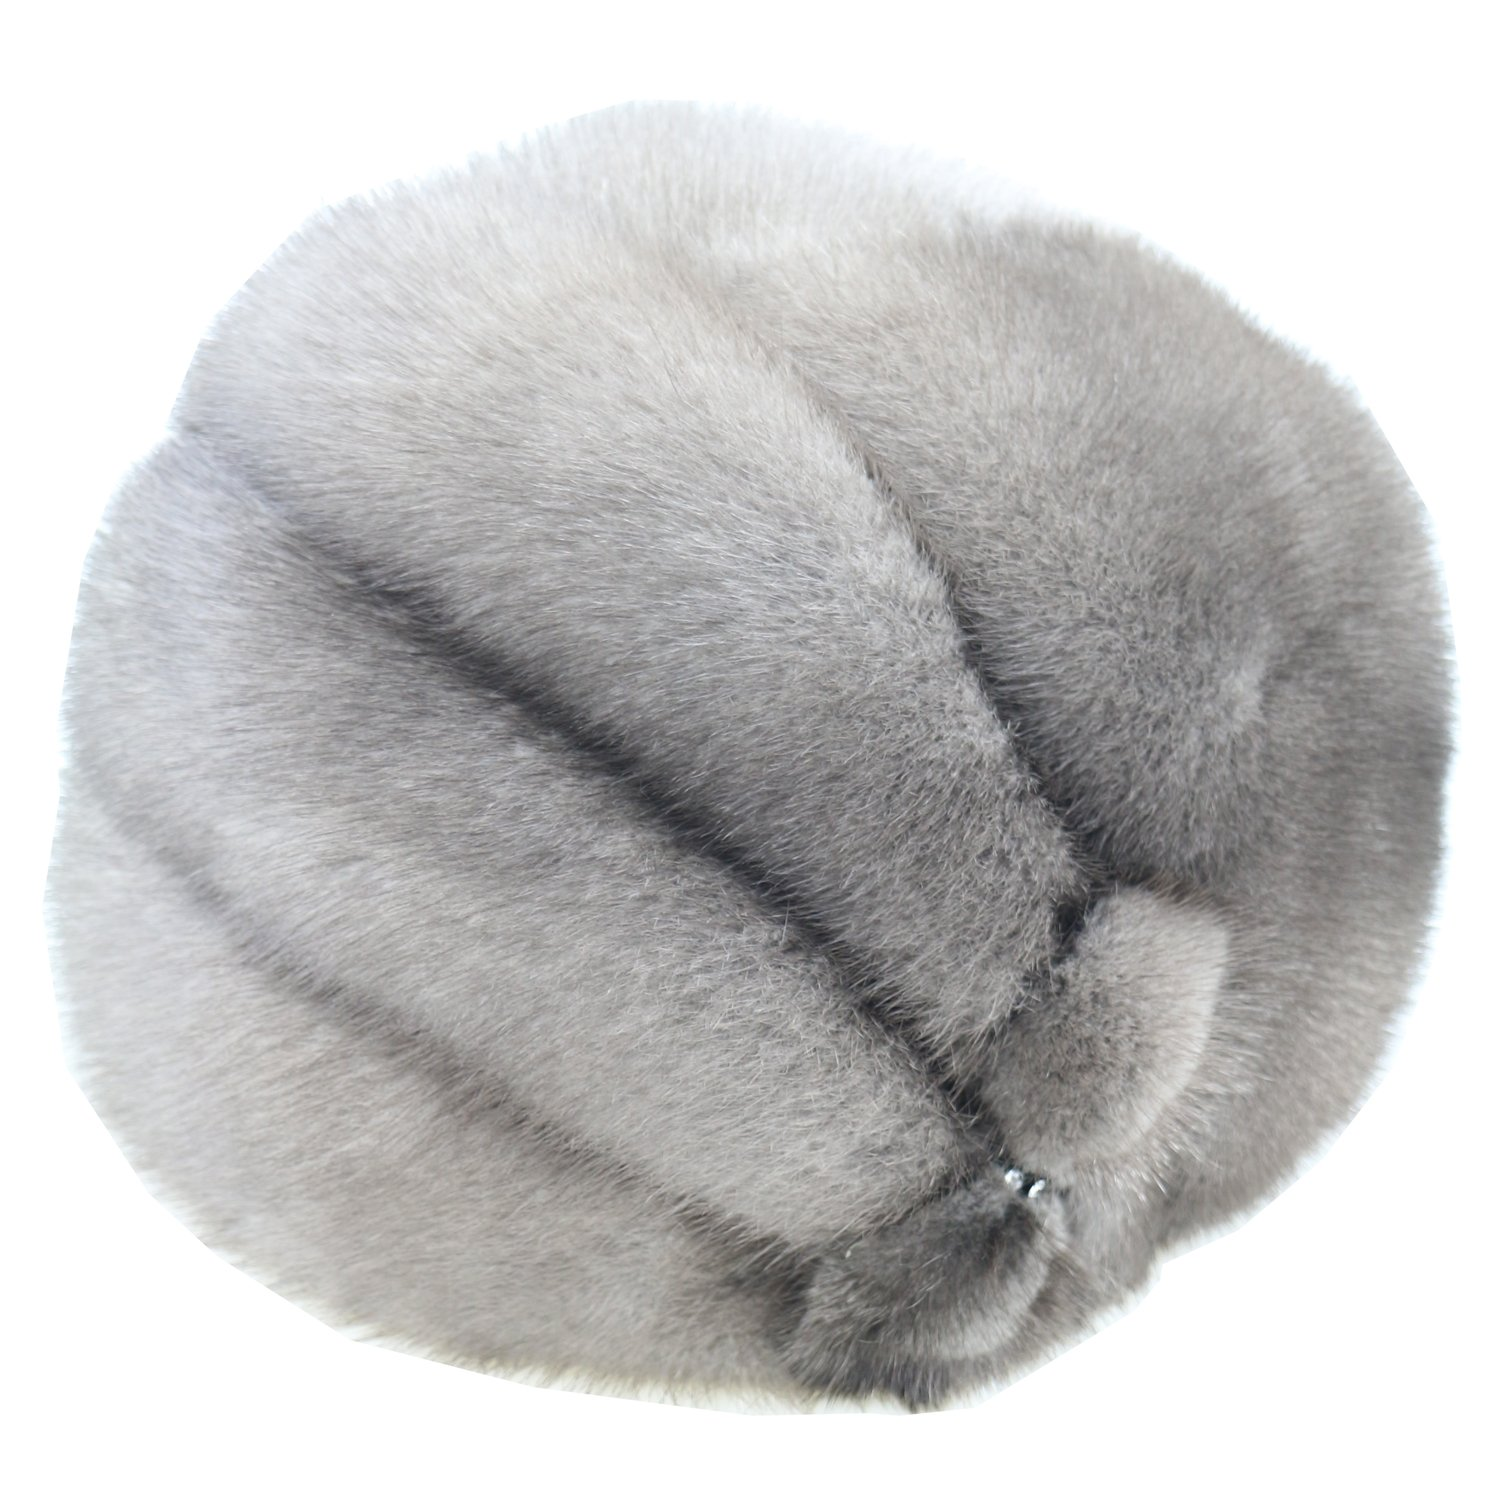 Ysting New Fashion Women's 100% Real Genuine Mink Fur Cap by Ysting&CO